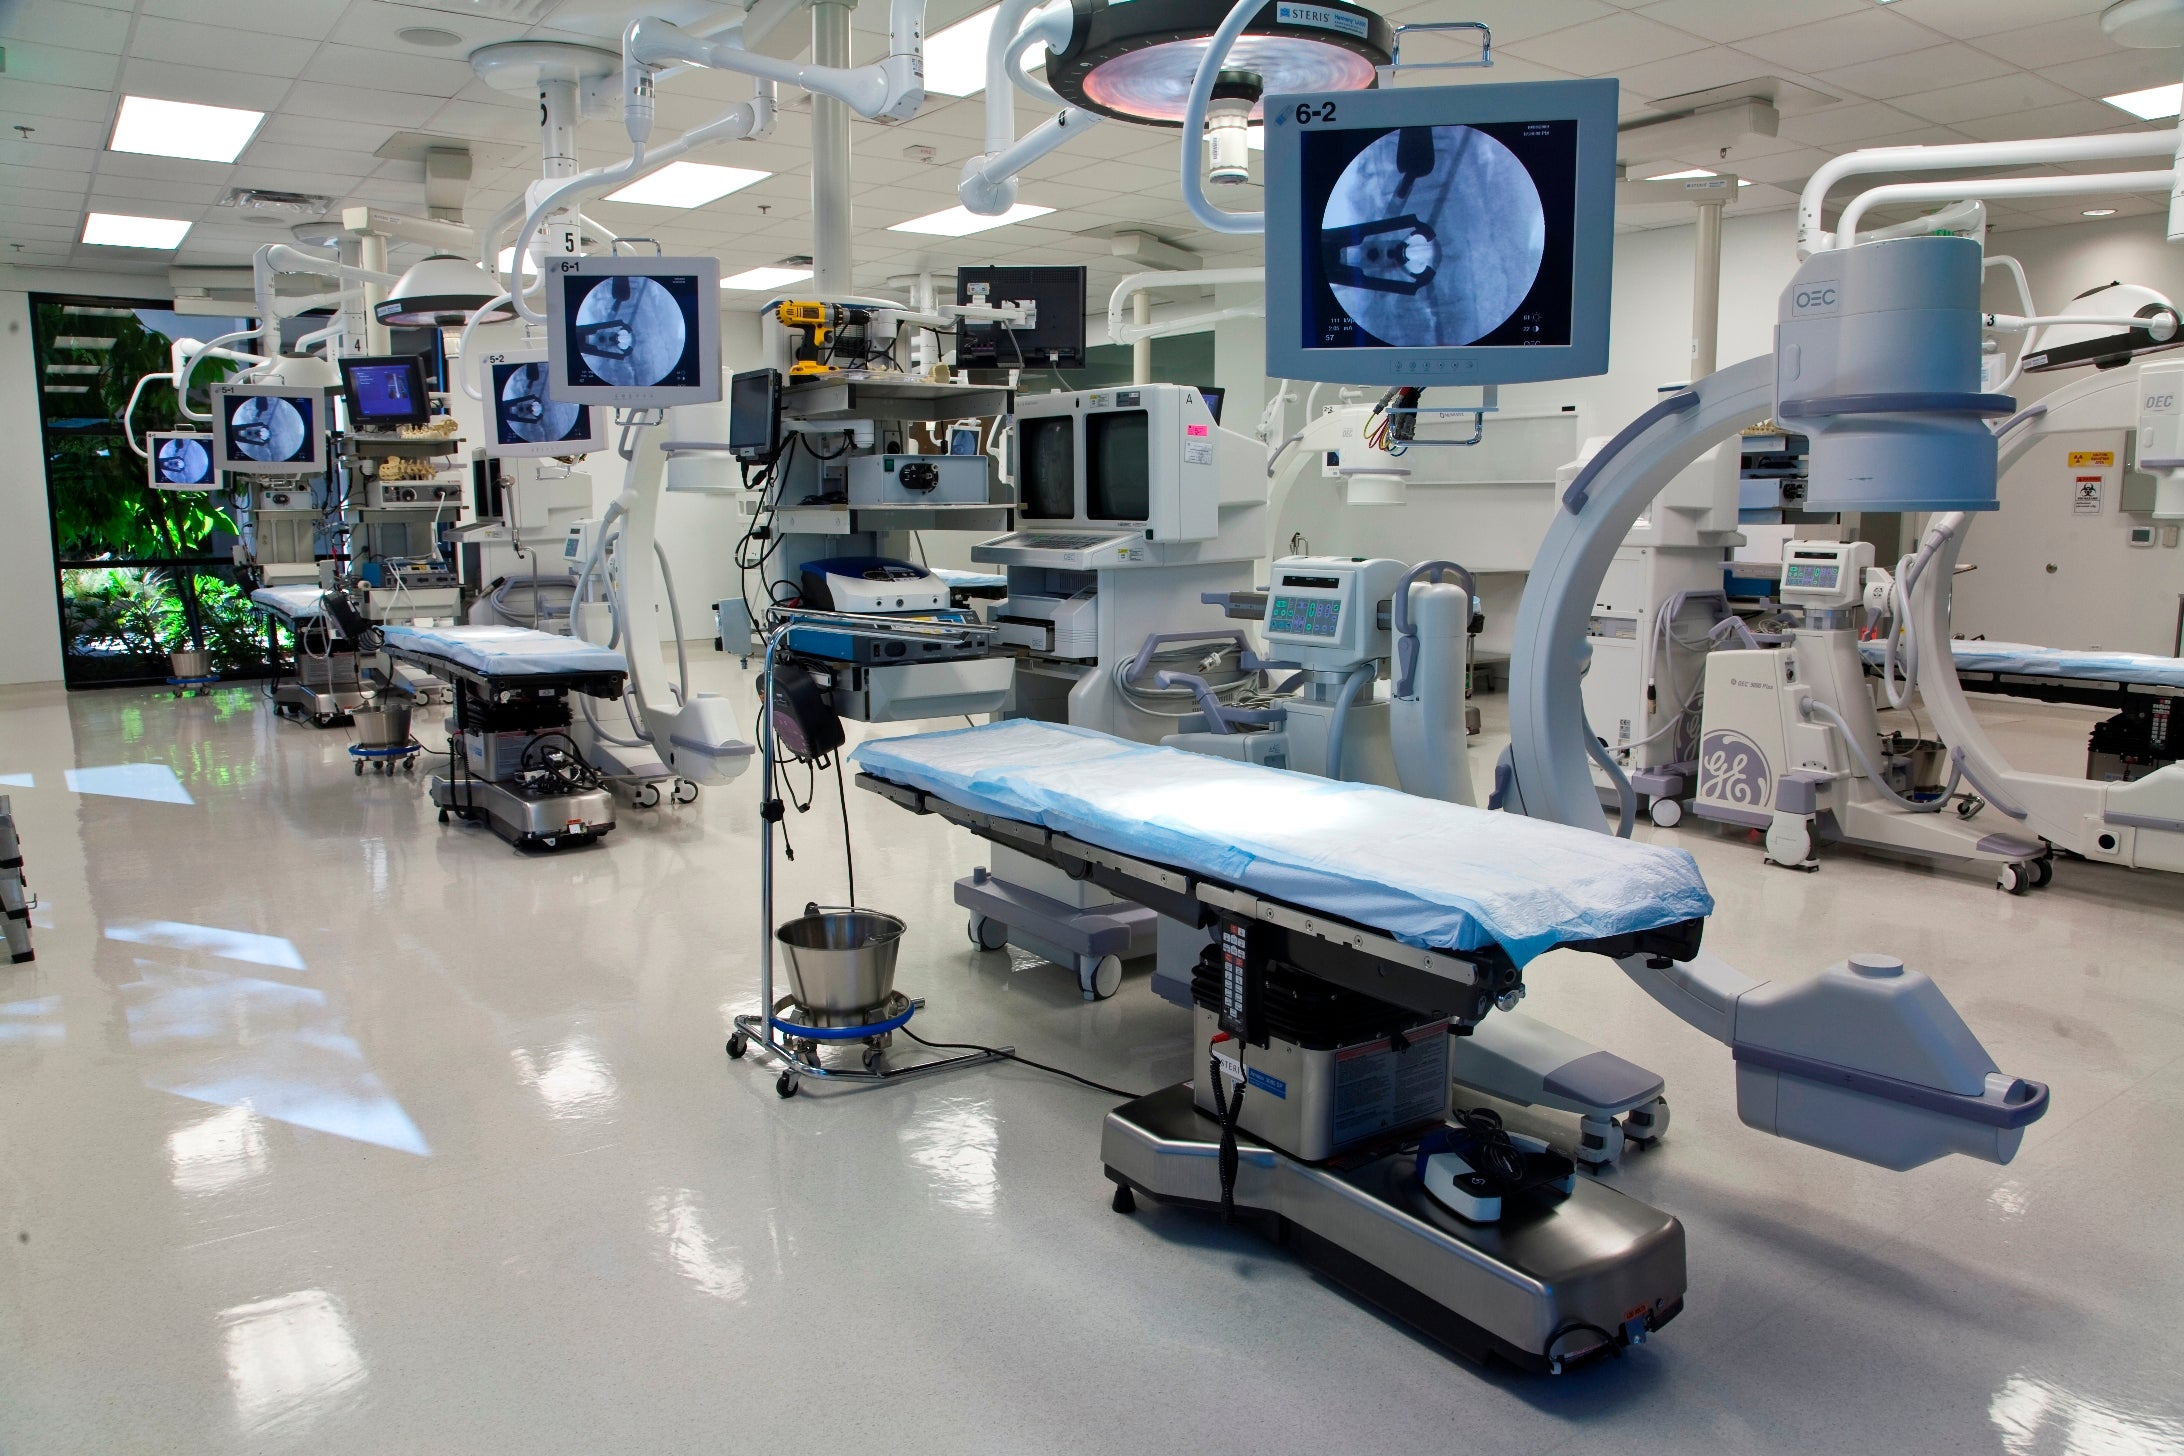 Several spinal surgical tables with imaging equipment and various monitors nearby, in a room with white tile floors and bright fluorescent lighting.